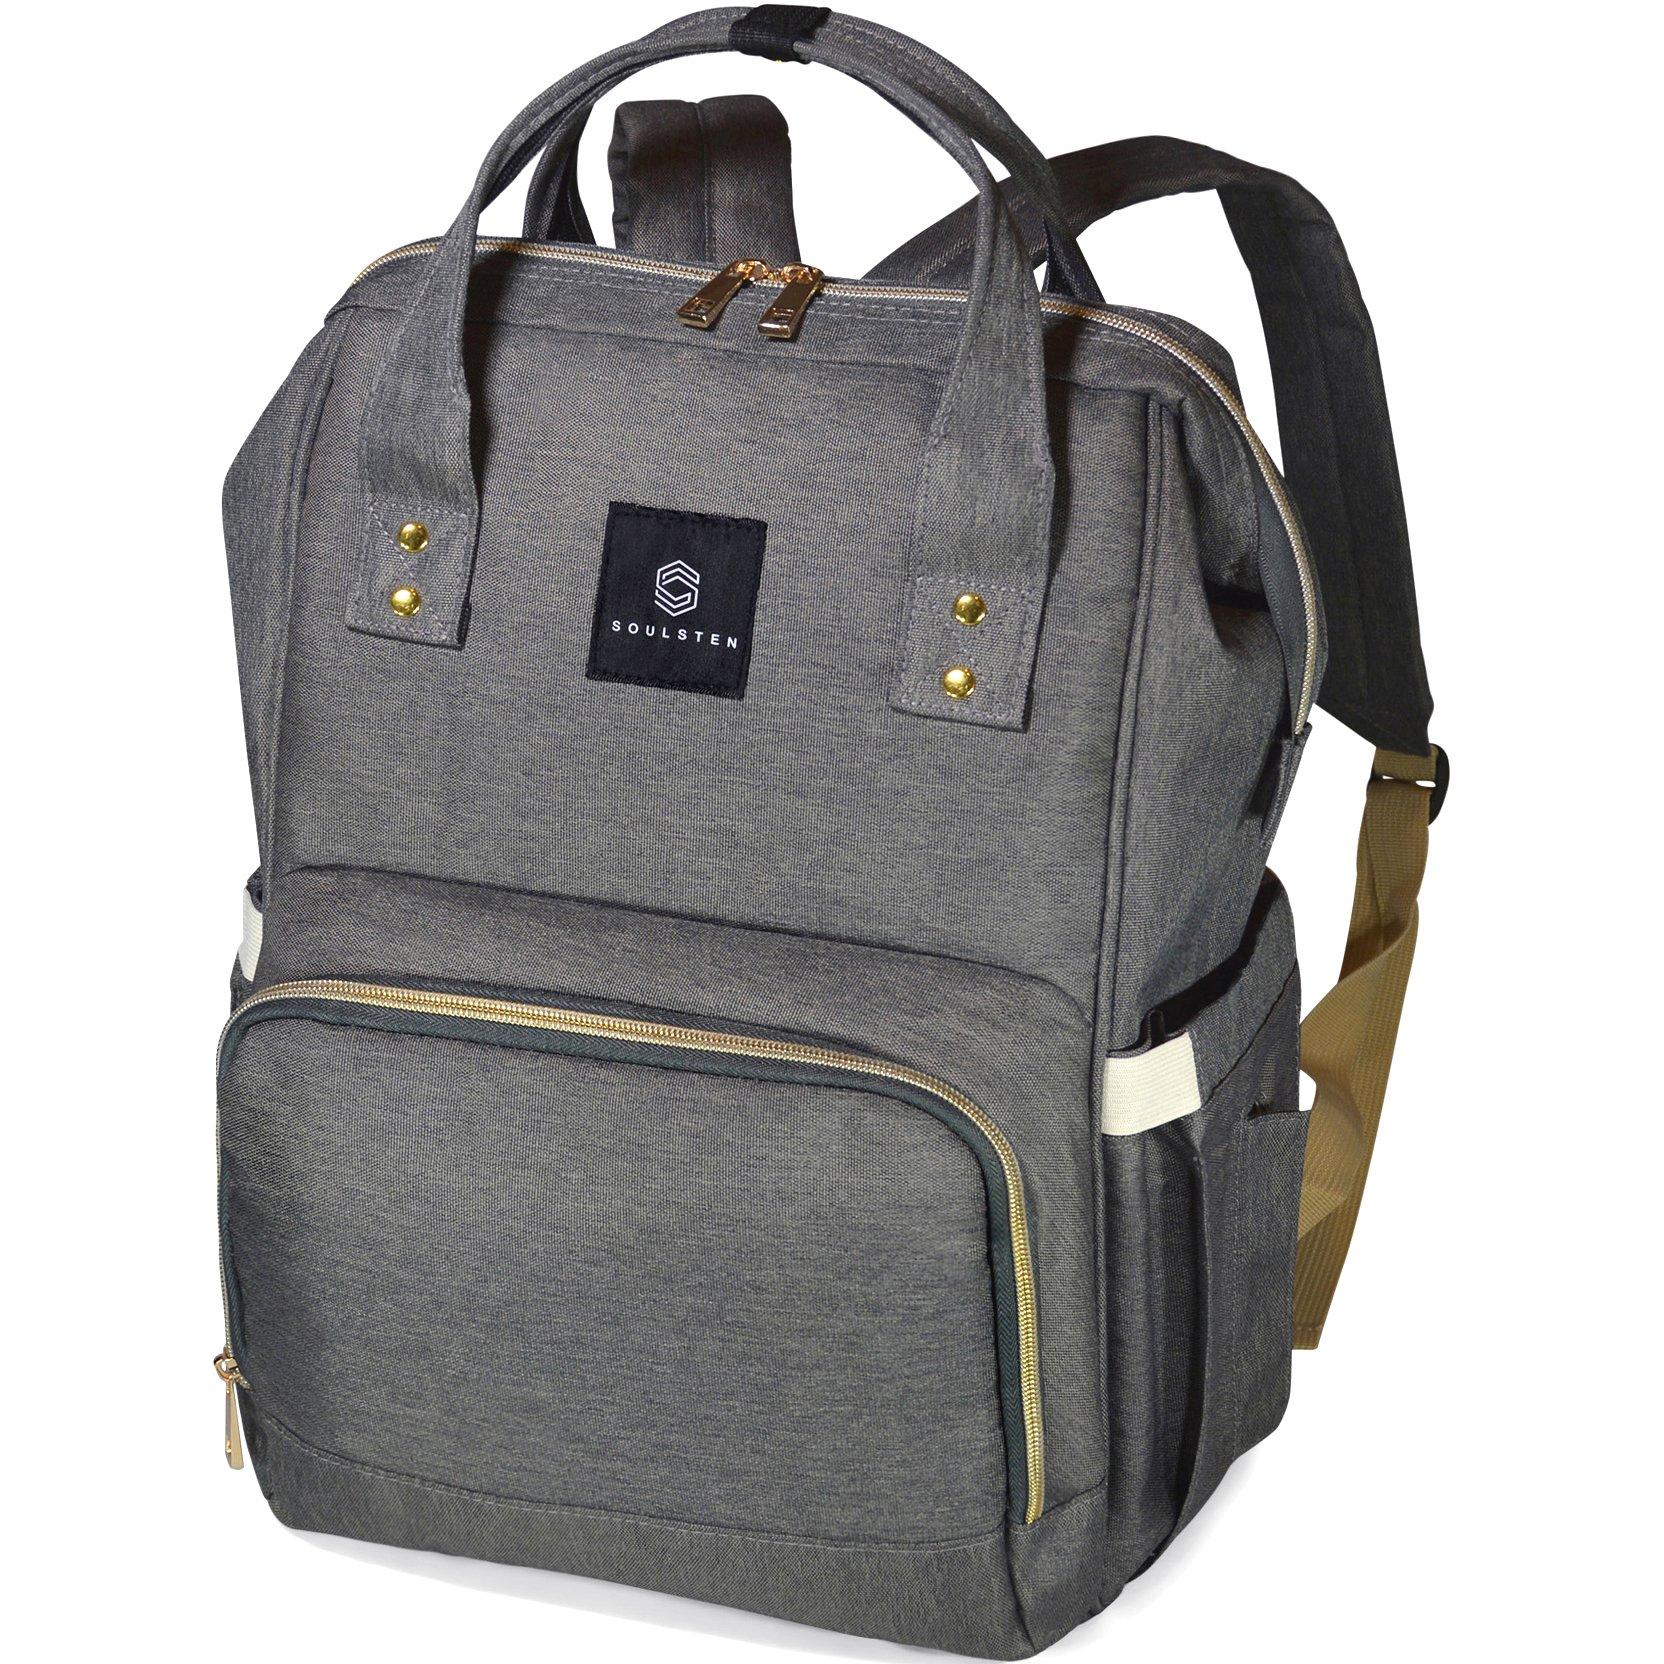 034e6f793f5f Best Rated in Diaper Bags   Helpful Customer Reviews - Amazon.com